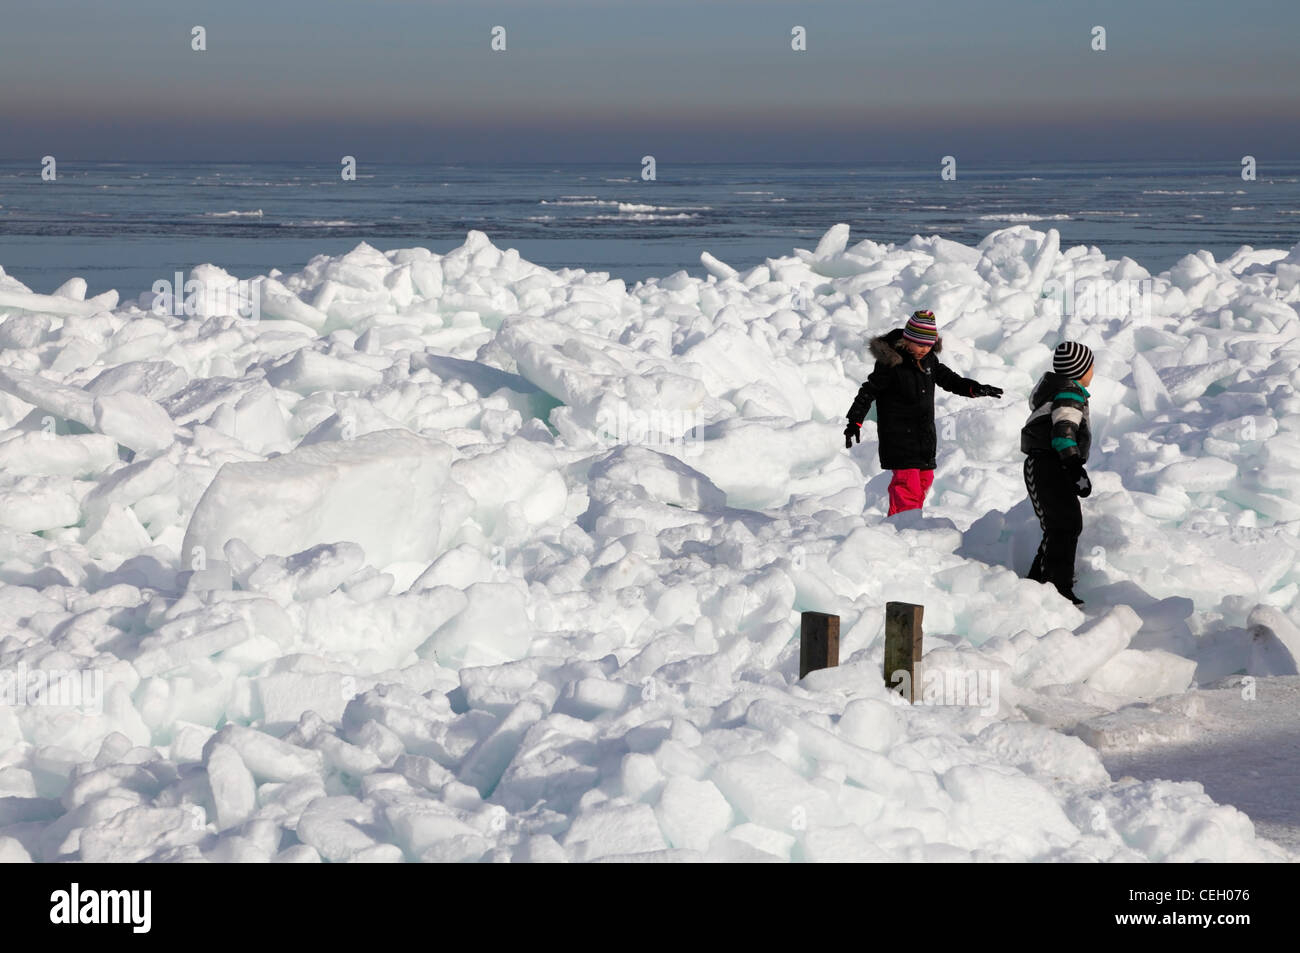 Two kids on ice packs in the Øresund  or Oresund sound at Rungsted Harbour near Copenhagen after a cold spell - Stock Image